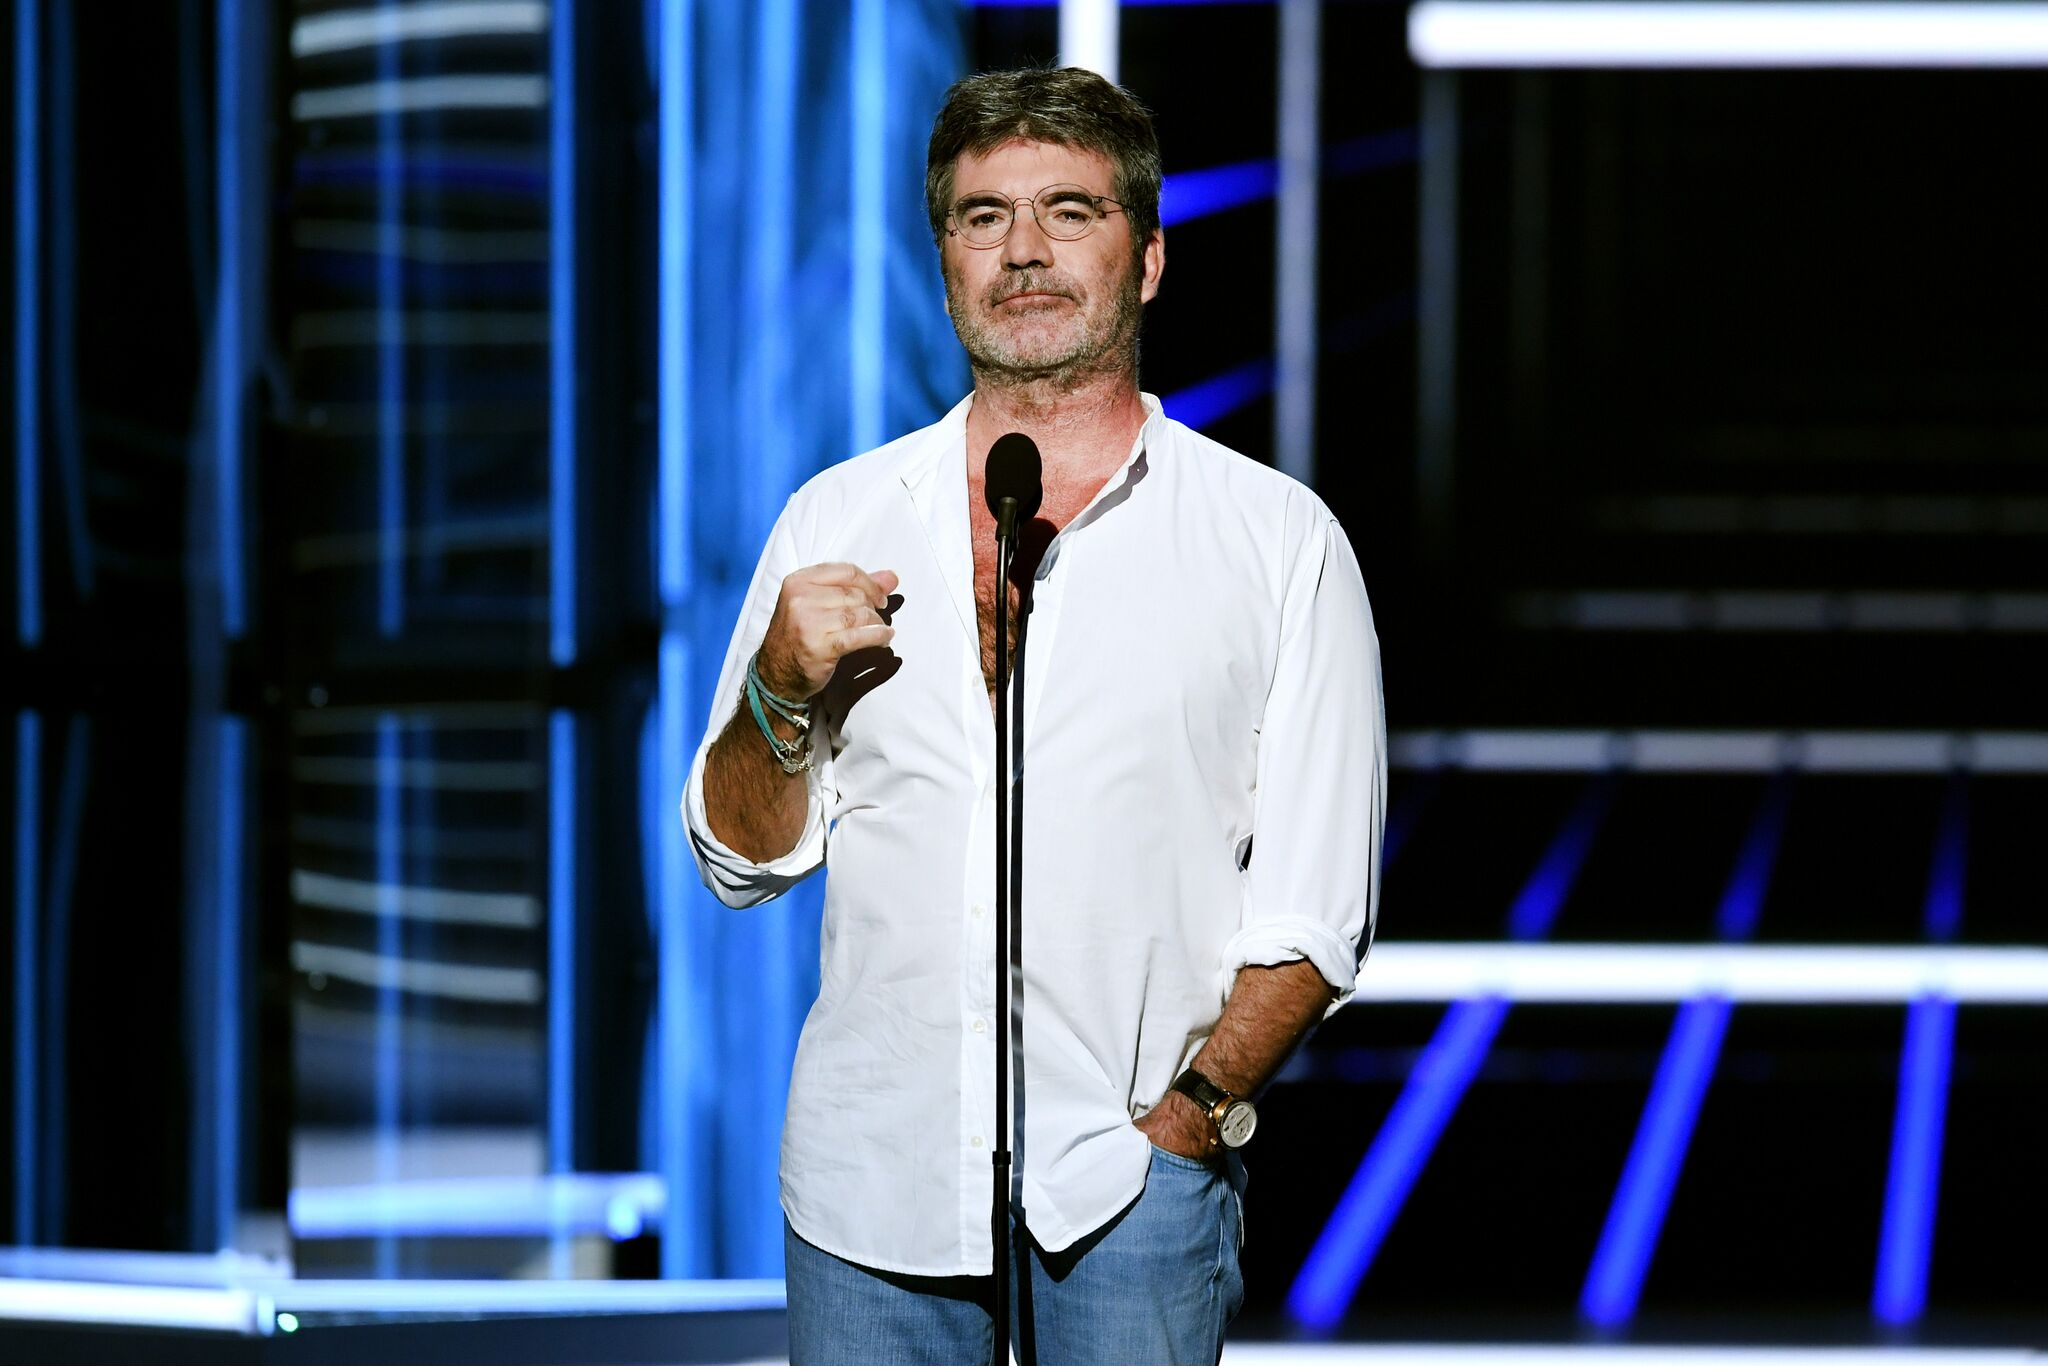 Simon Cowell speaks onstage during the 2018 Billboard Music Awards | Getty Images